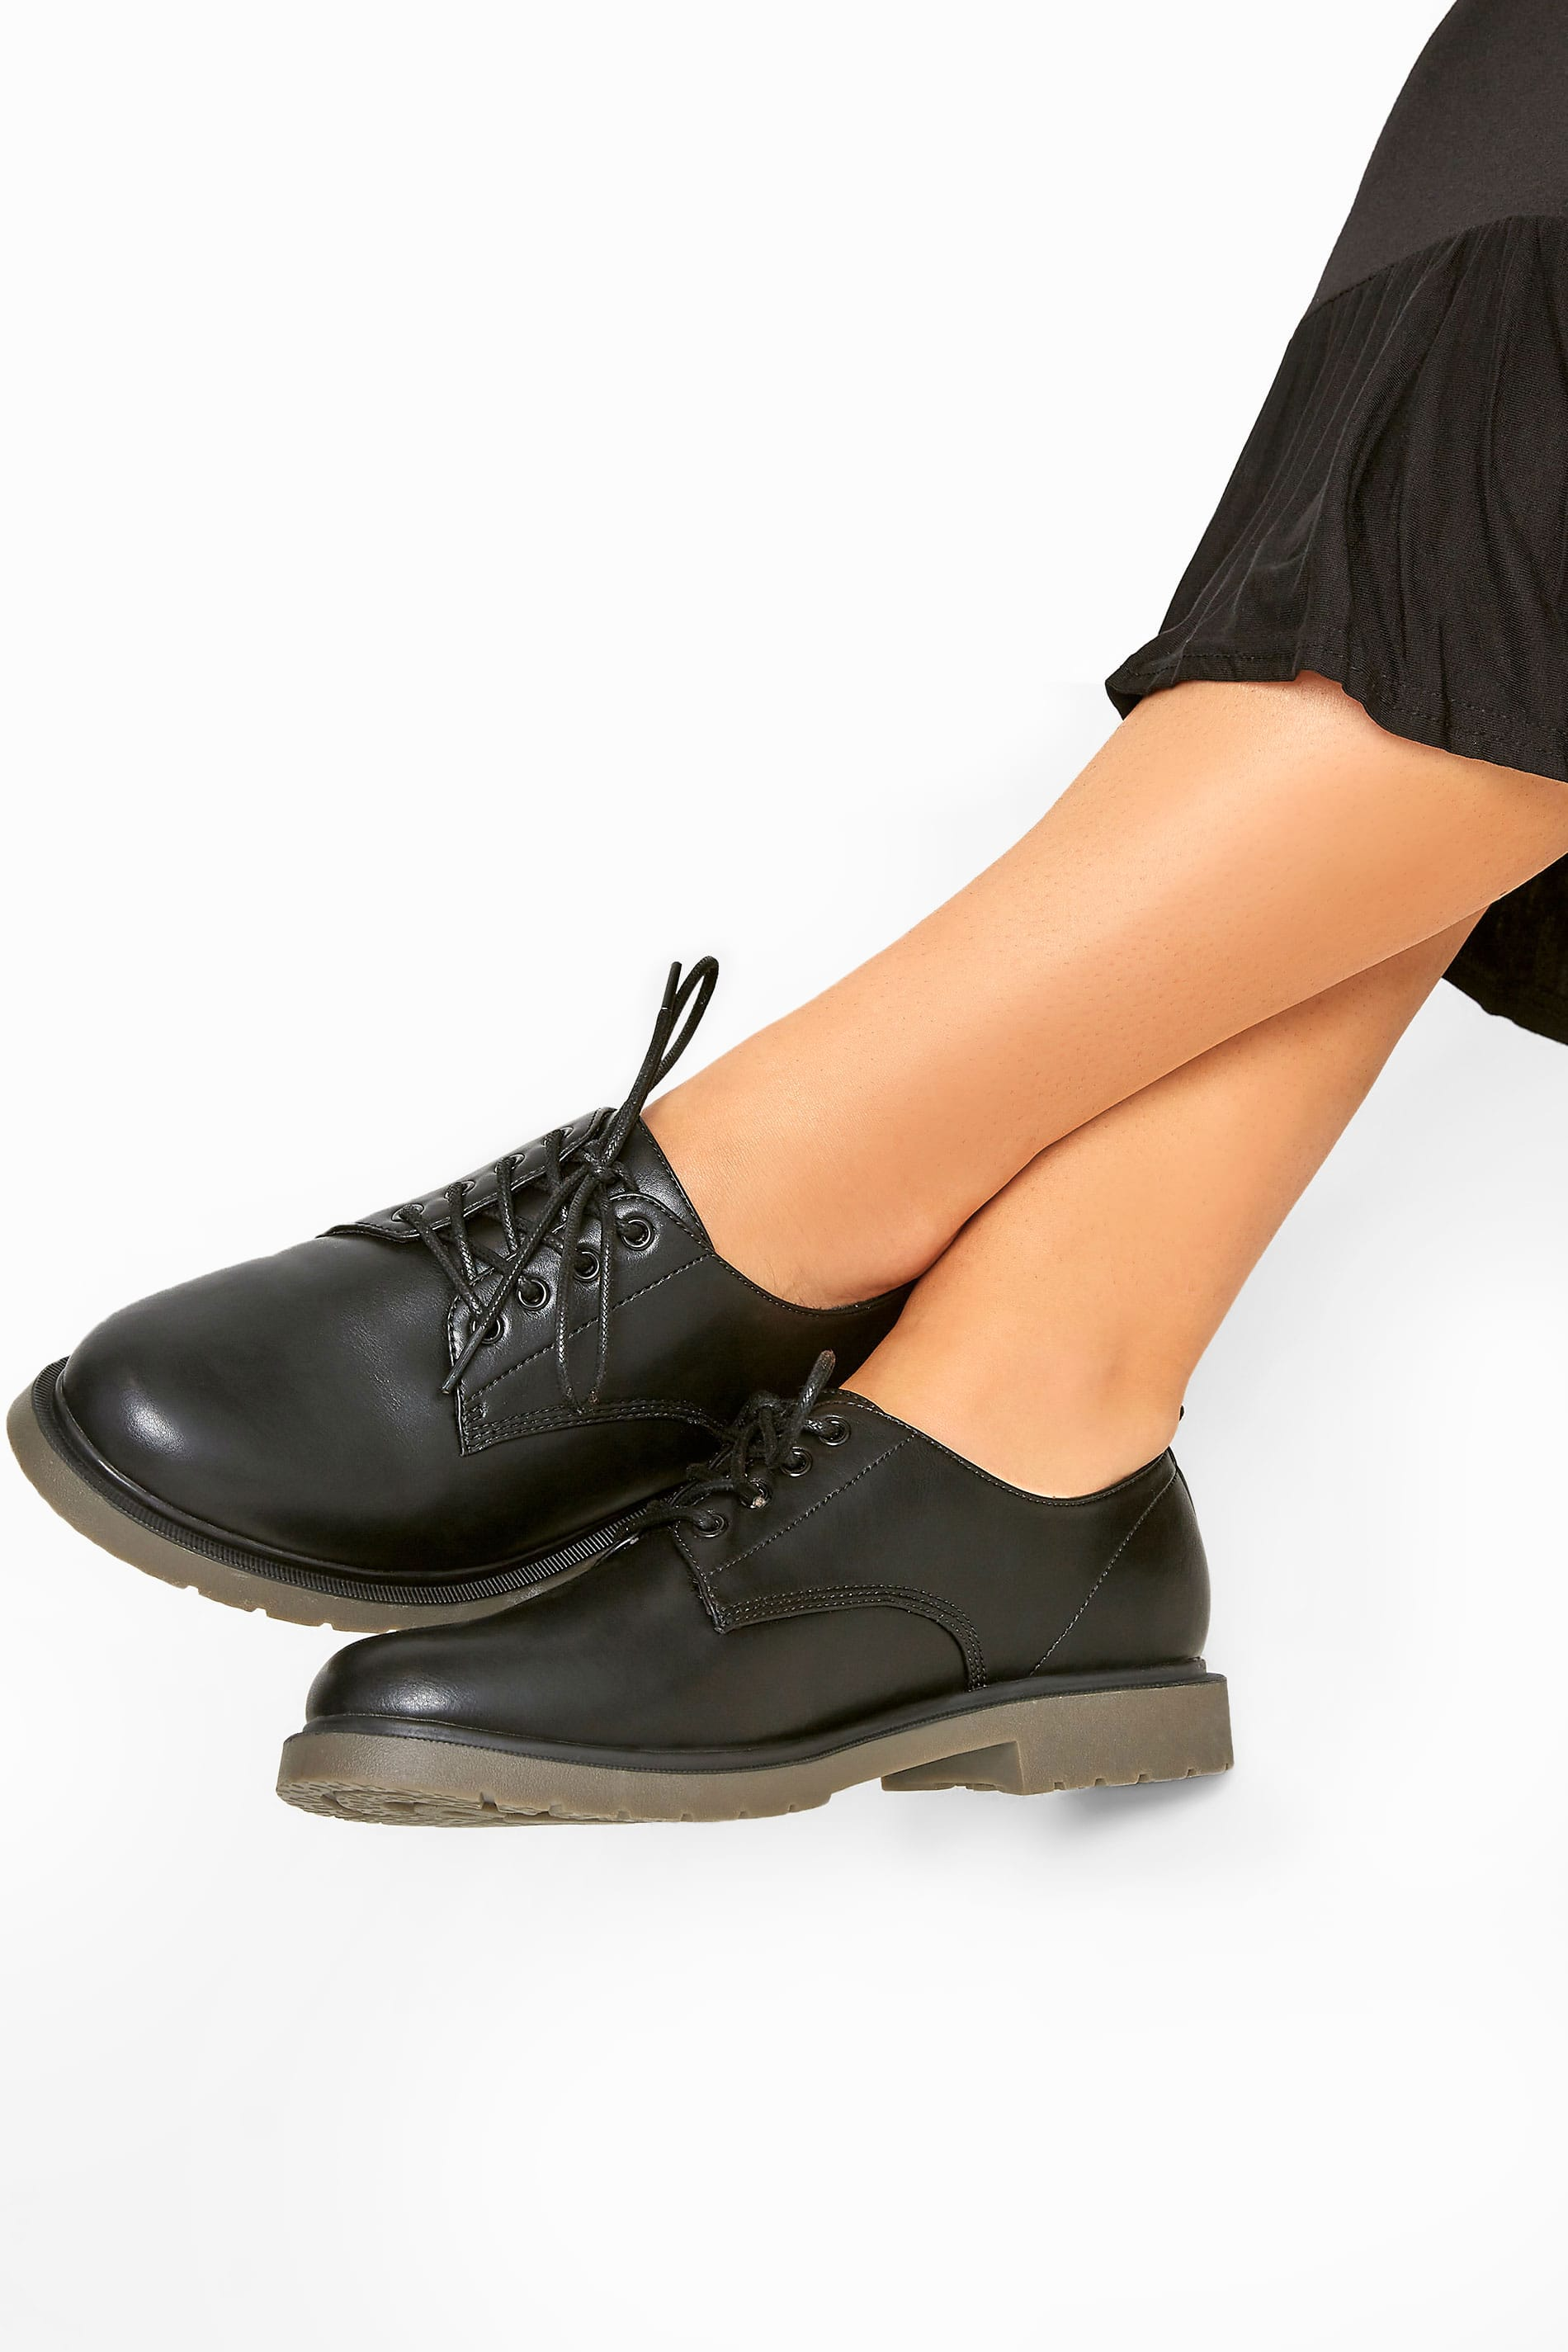 Black Faux Leather Lace Up Brogues In